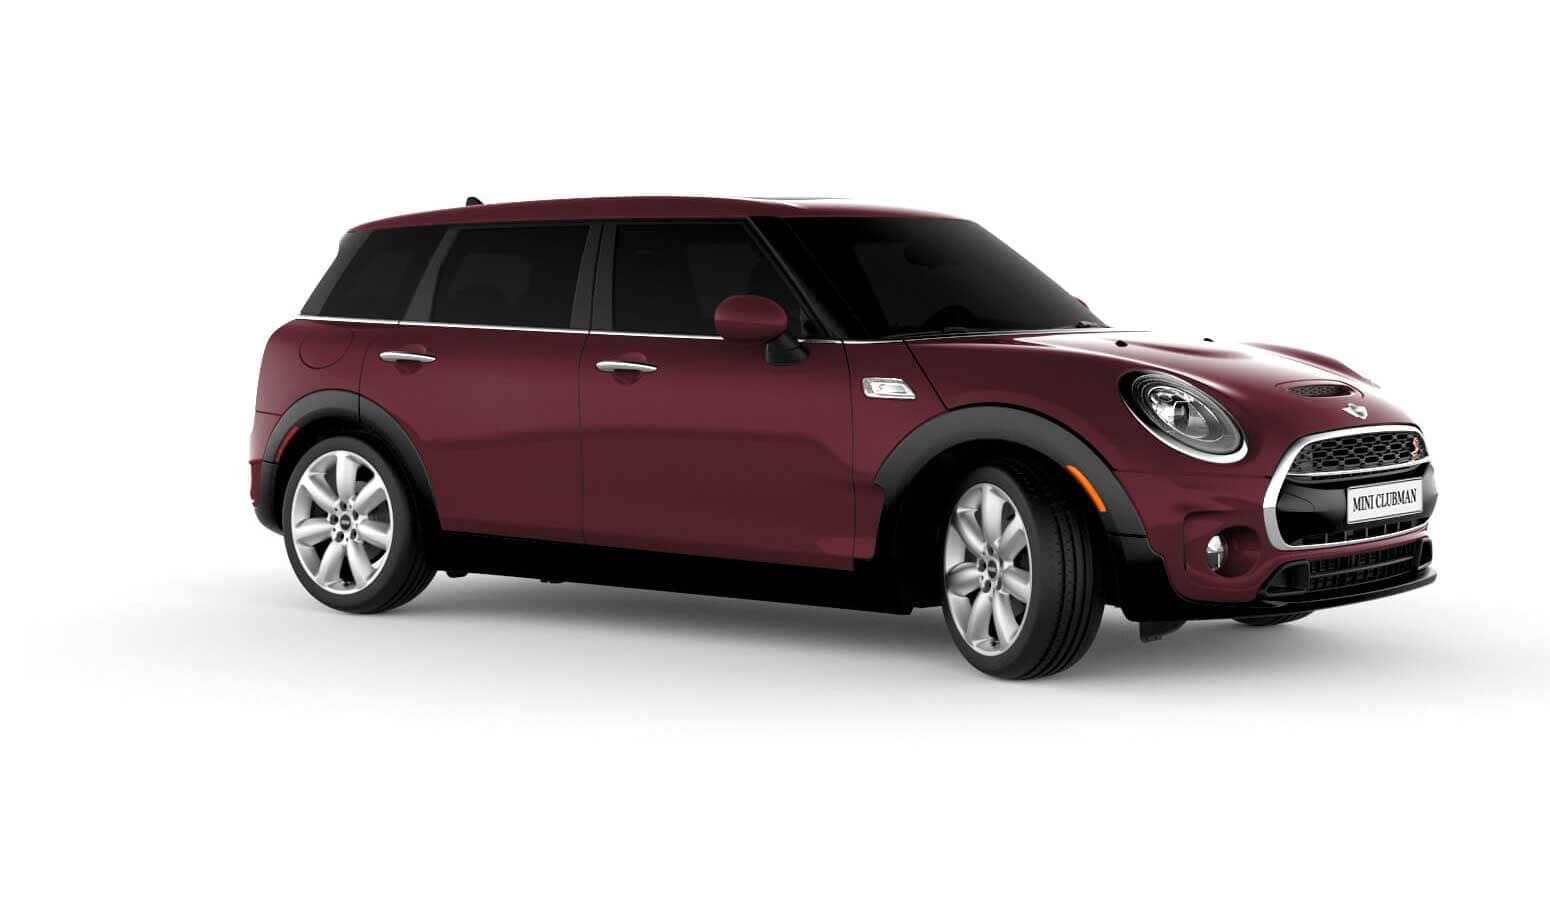 2018 Mini Clubman profile view